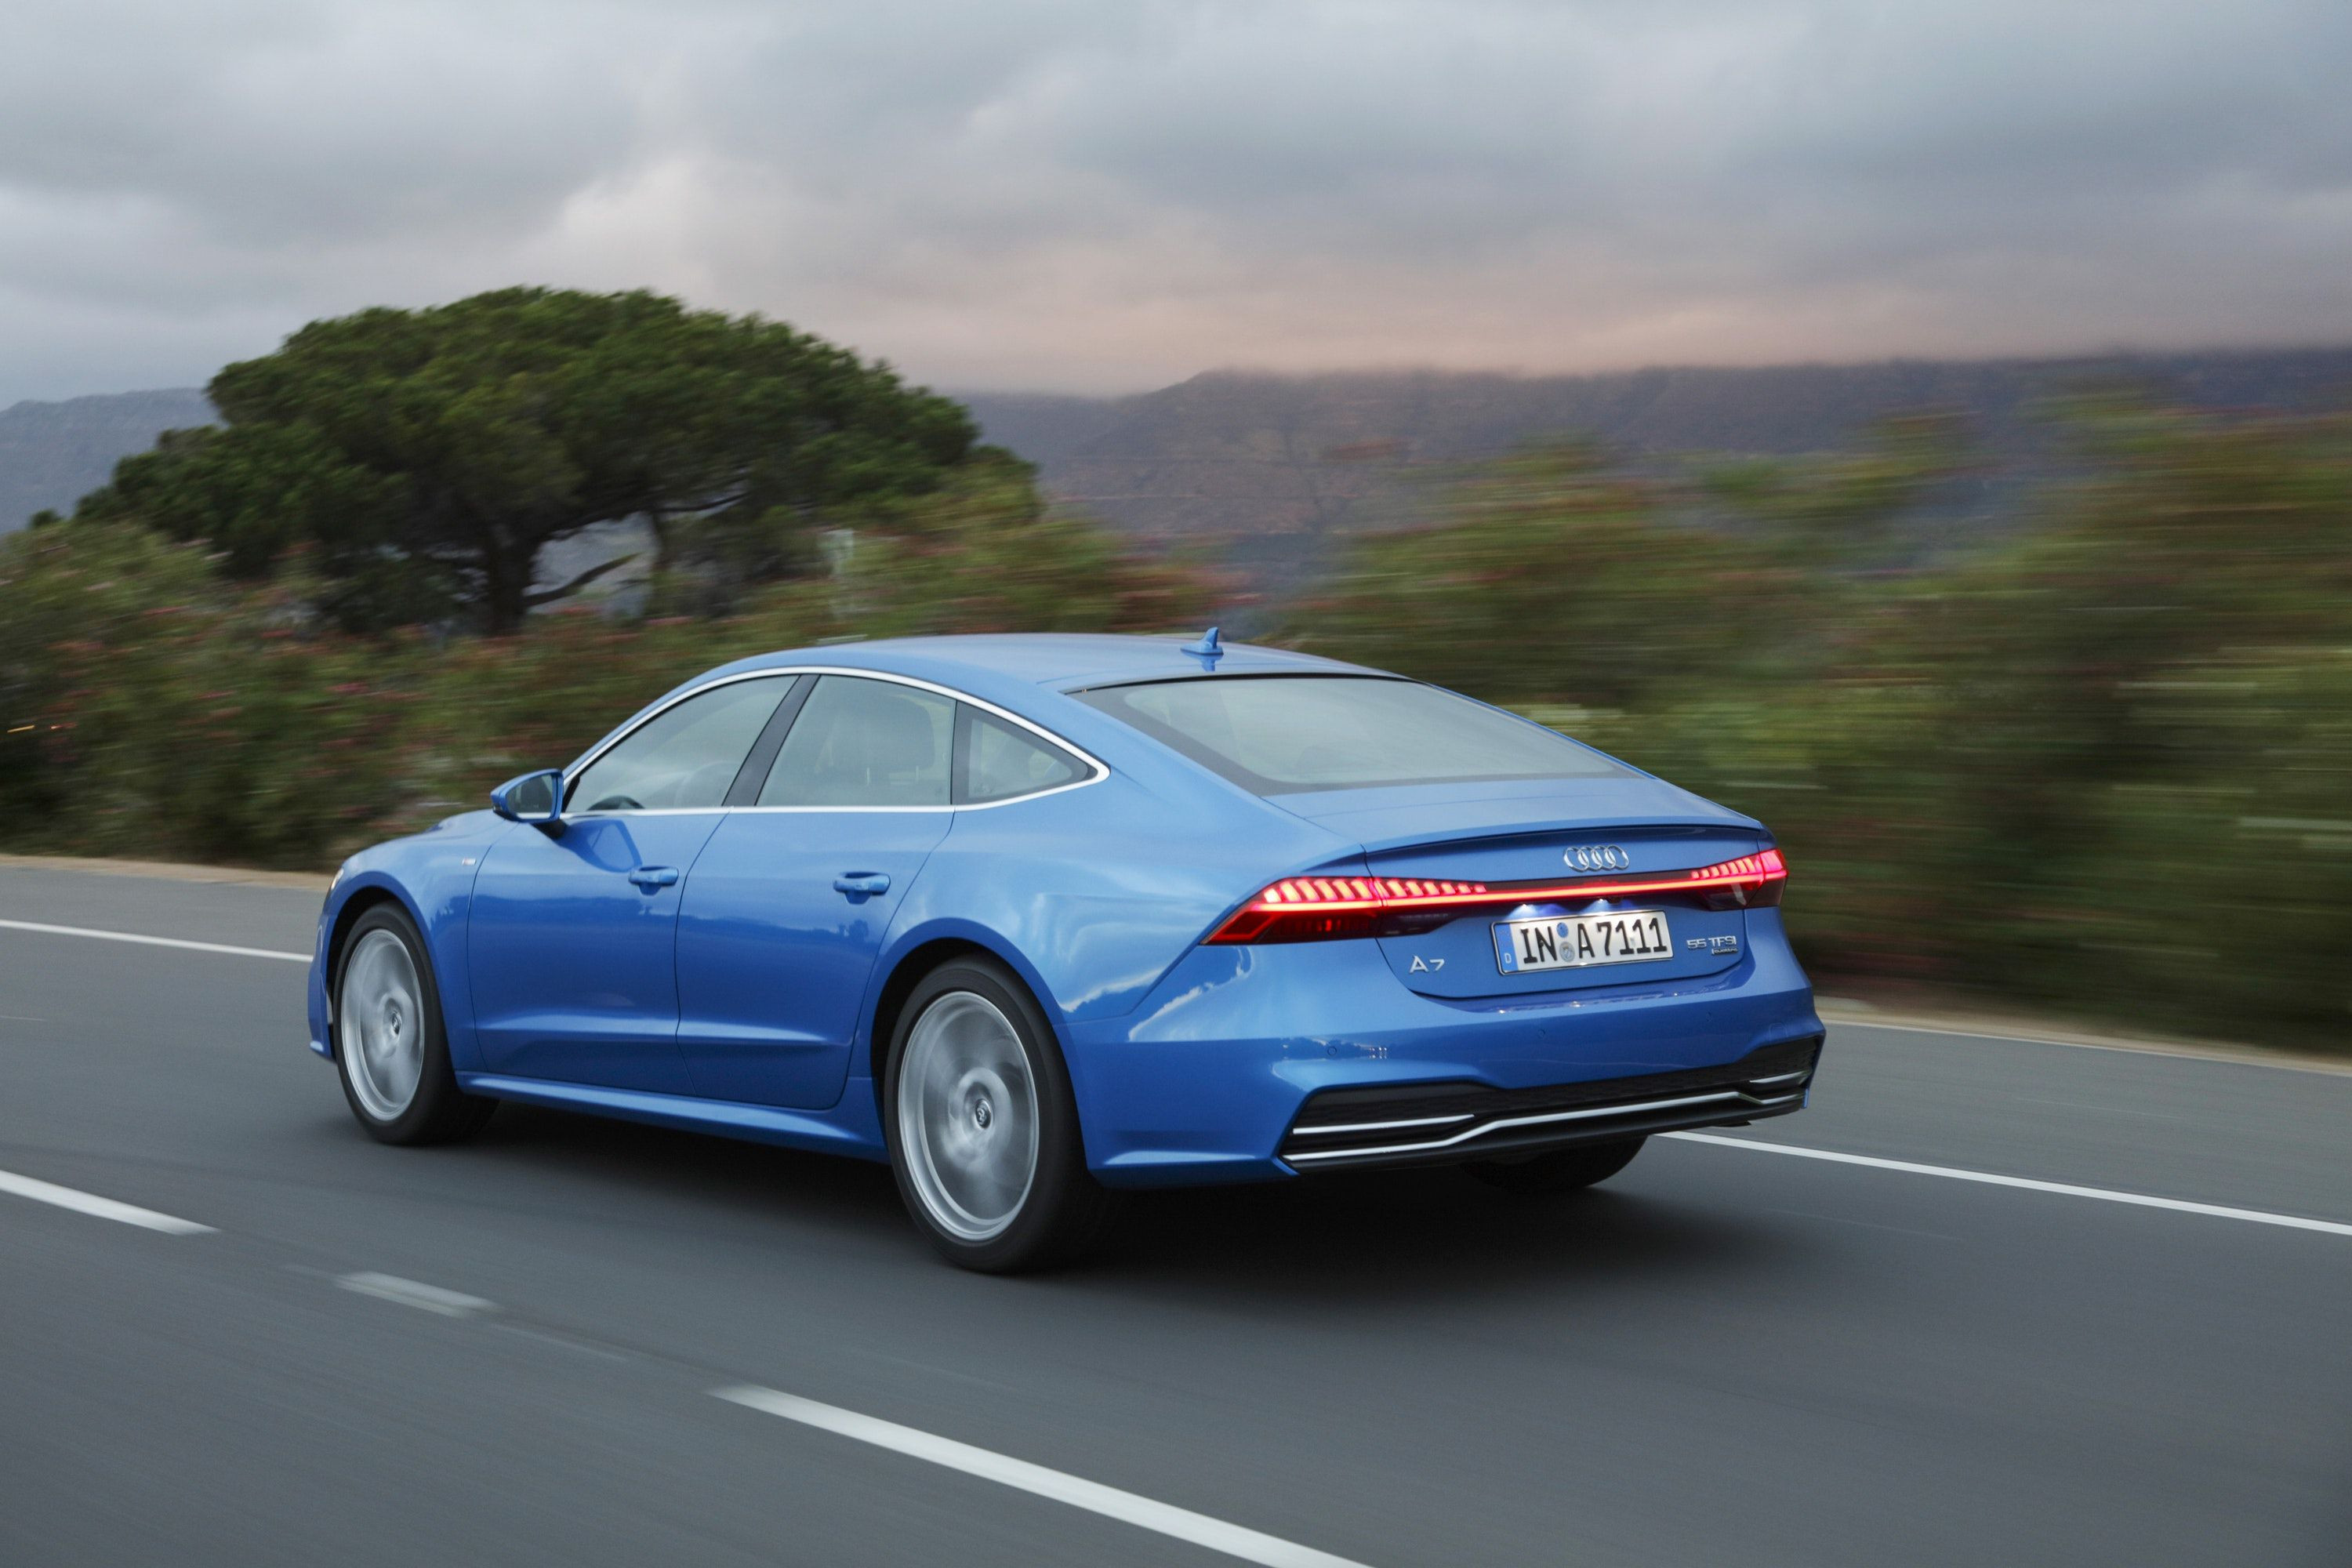 rear view of blue Audi A7 Sportback driving on a road